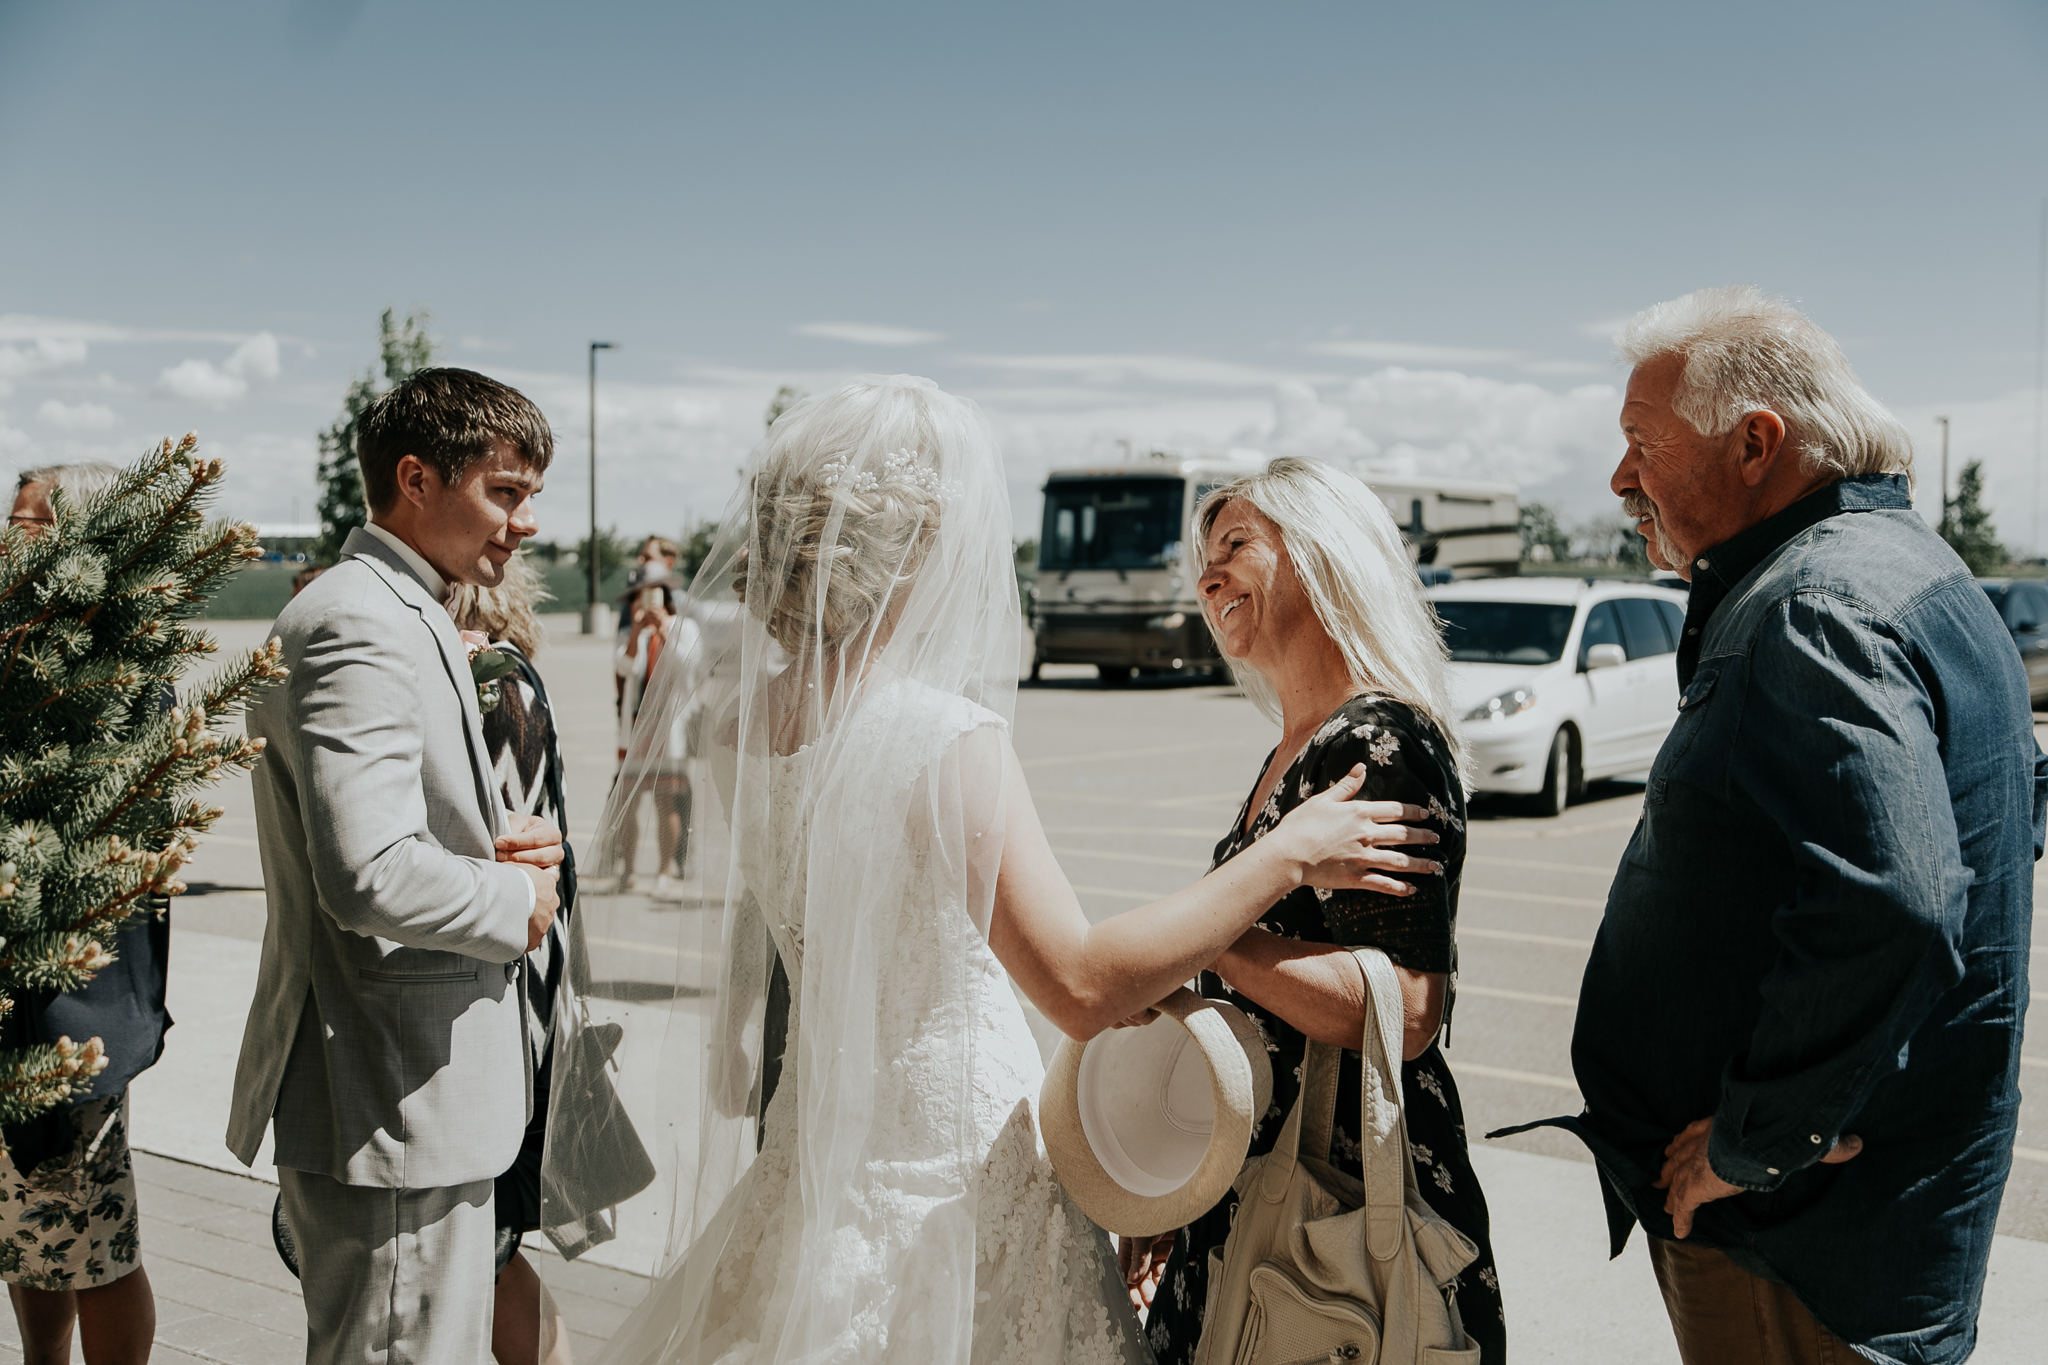 lethbridge-wedding-photographer-love-and-be-loved-photography-steven-marlene-reformed-church-photo-picture-image-21.jpg